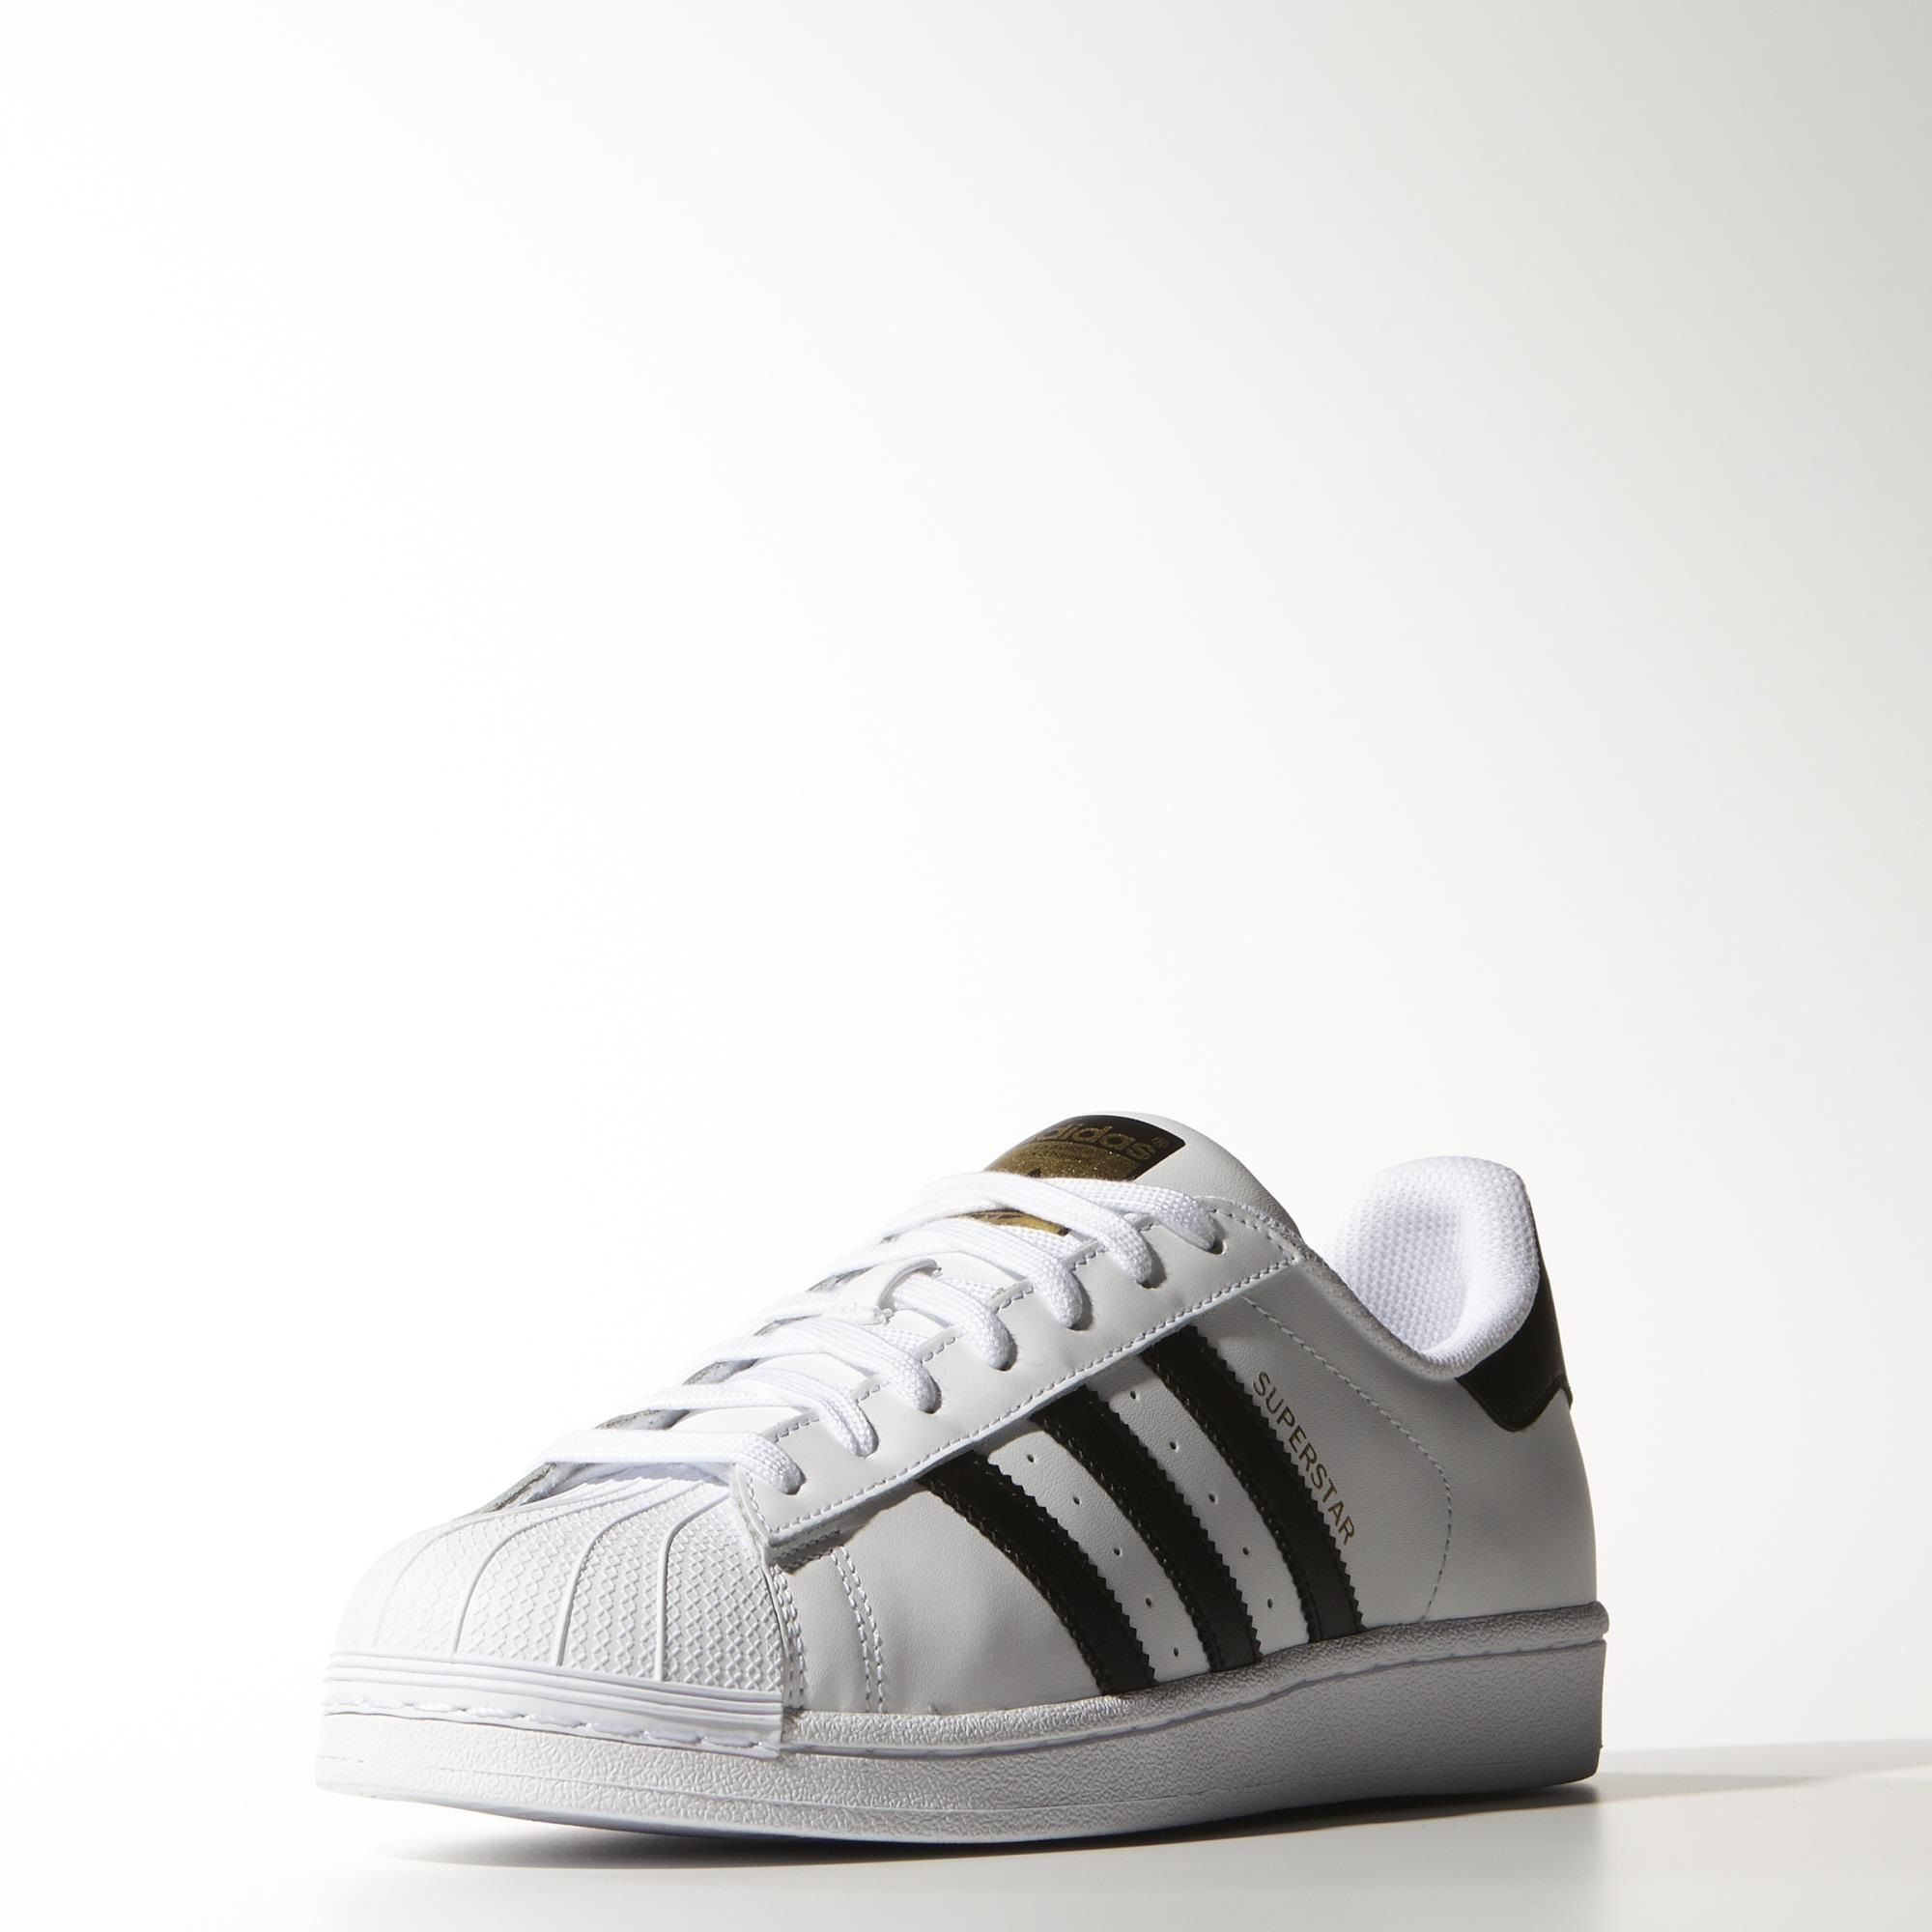 check out aa5c6 319f5 A modern manifestation of the original. The adidas Superstar was born in  the 70s as